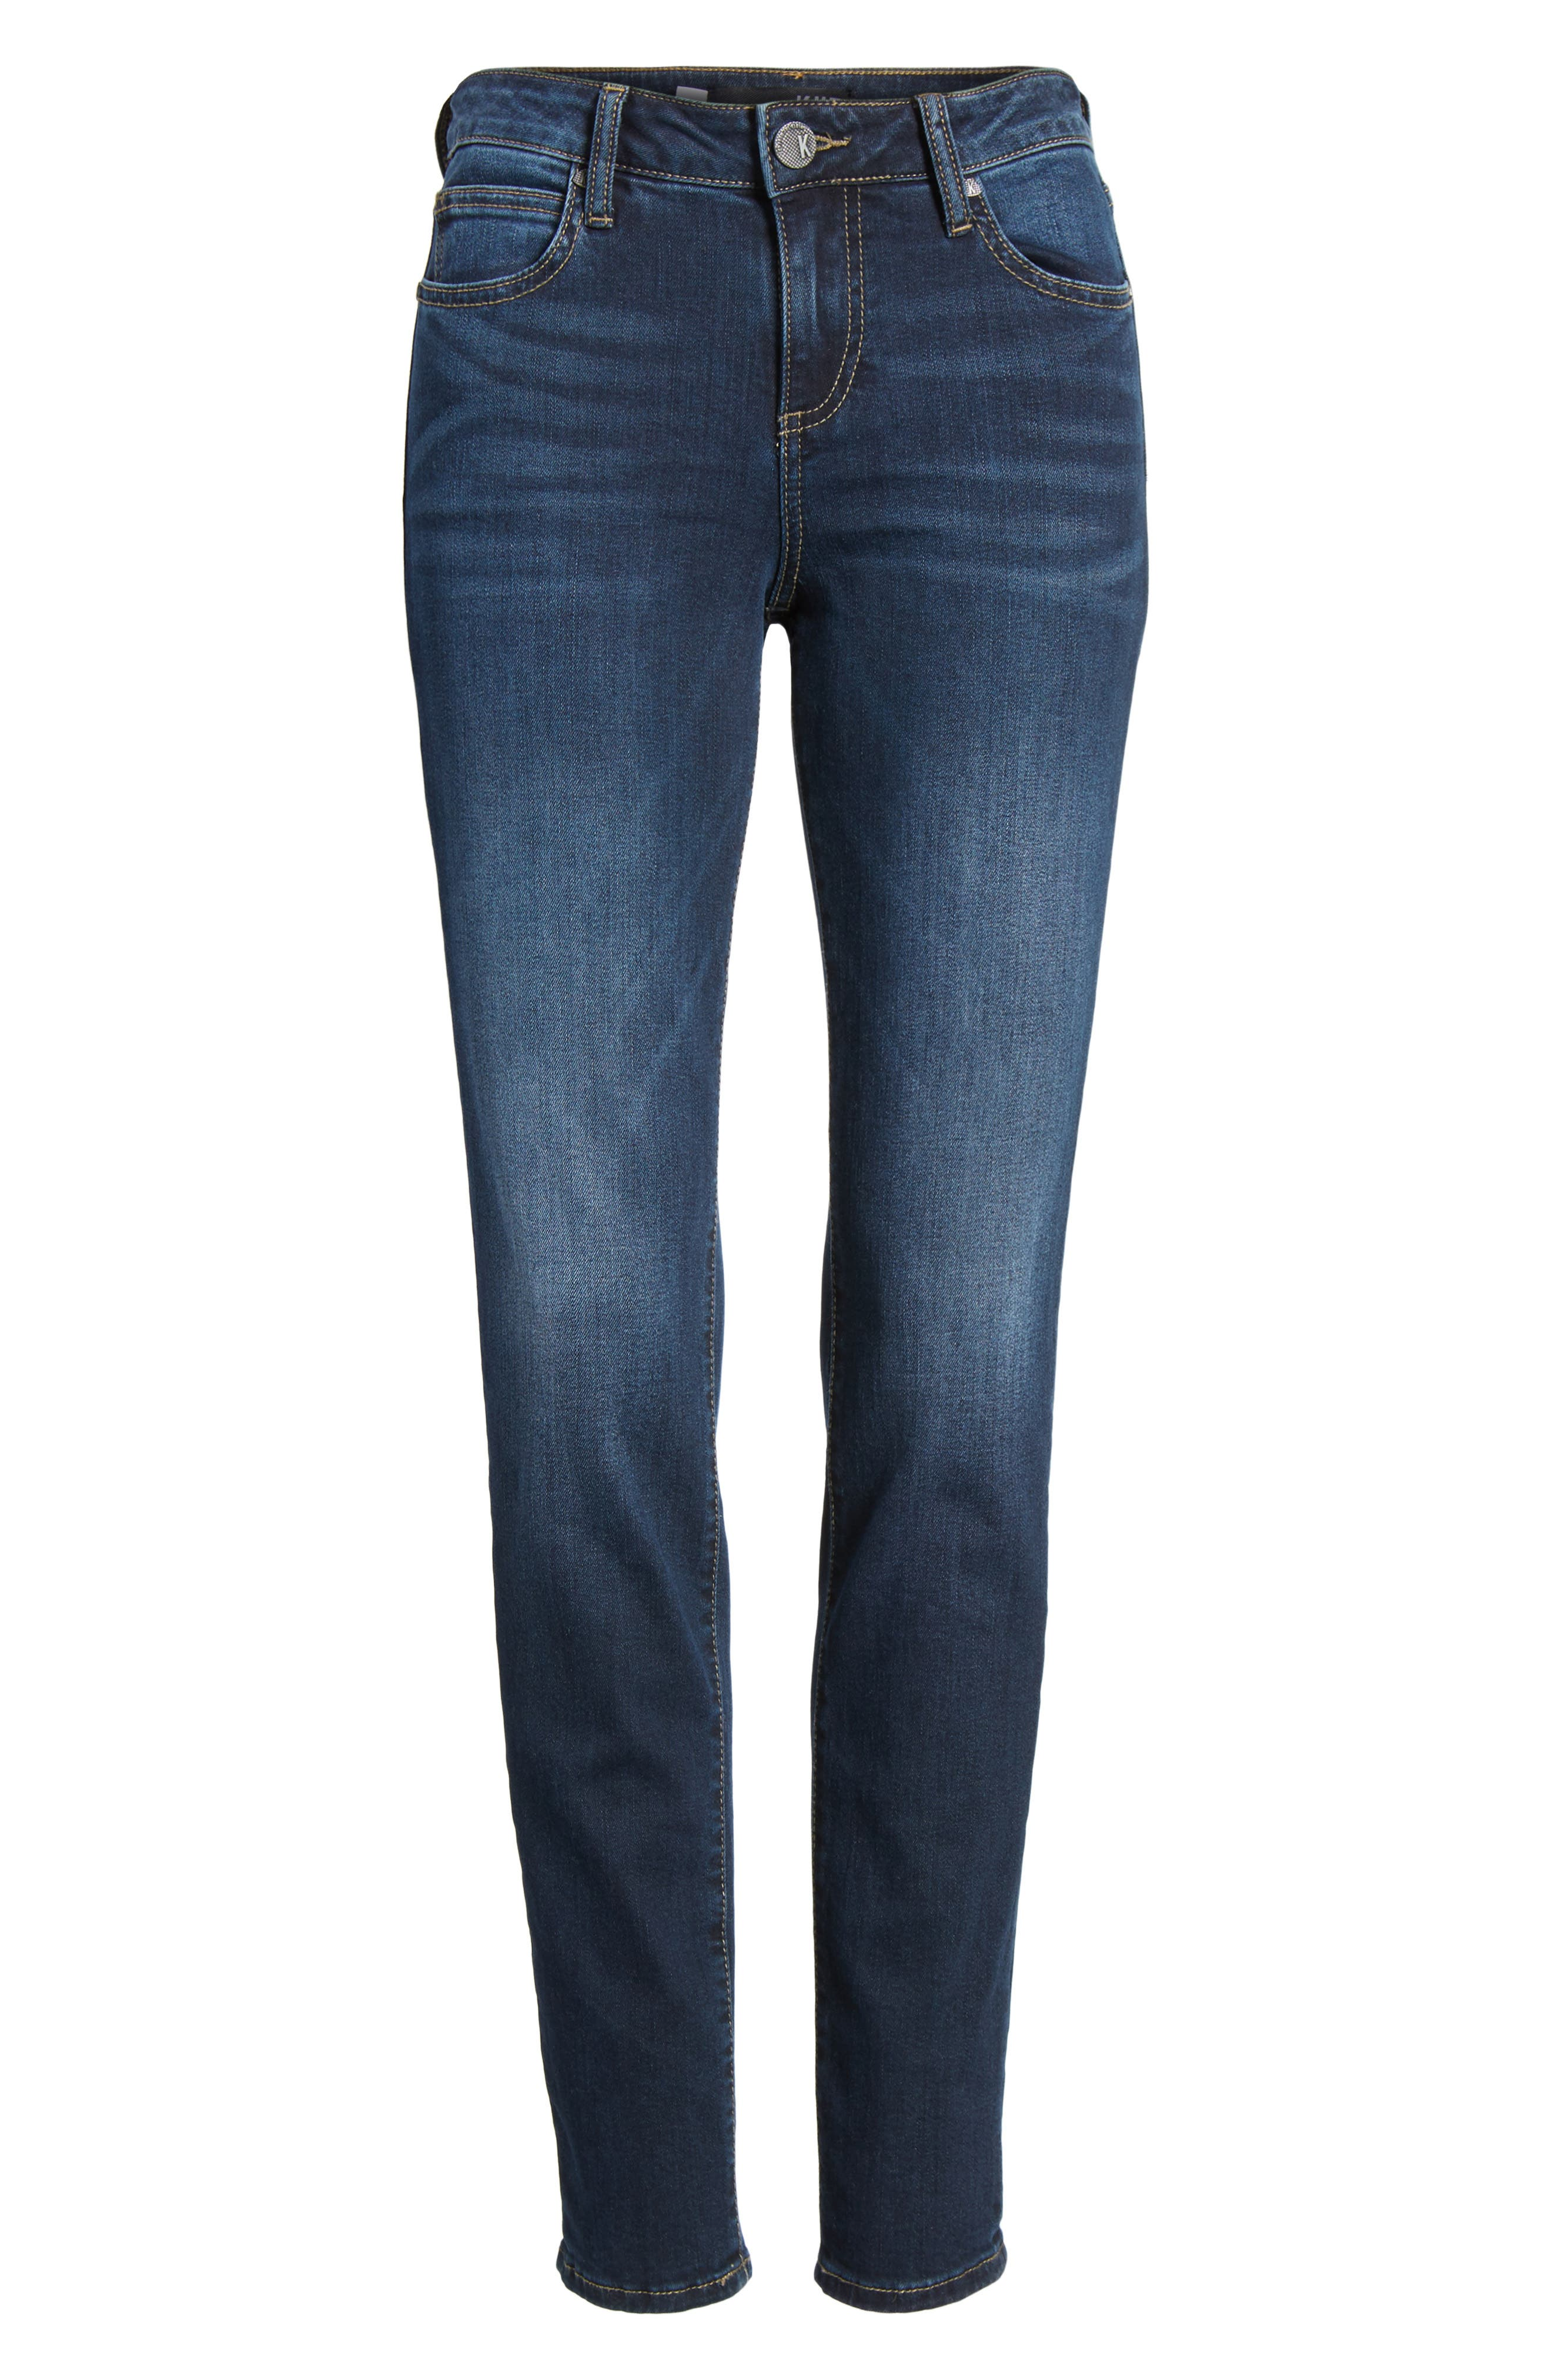 Diana Curvy Fit Skinny Jeans,                             Alternate thumbnail 6, color,                             473